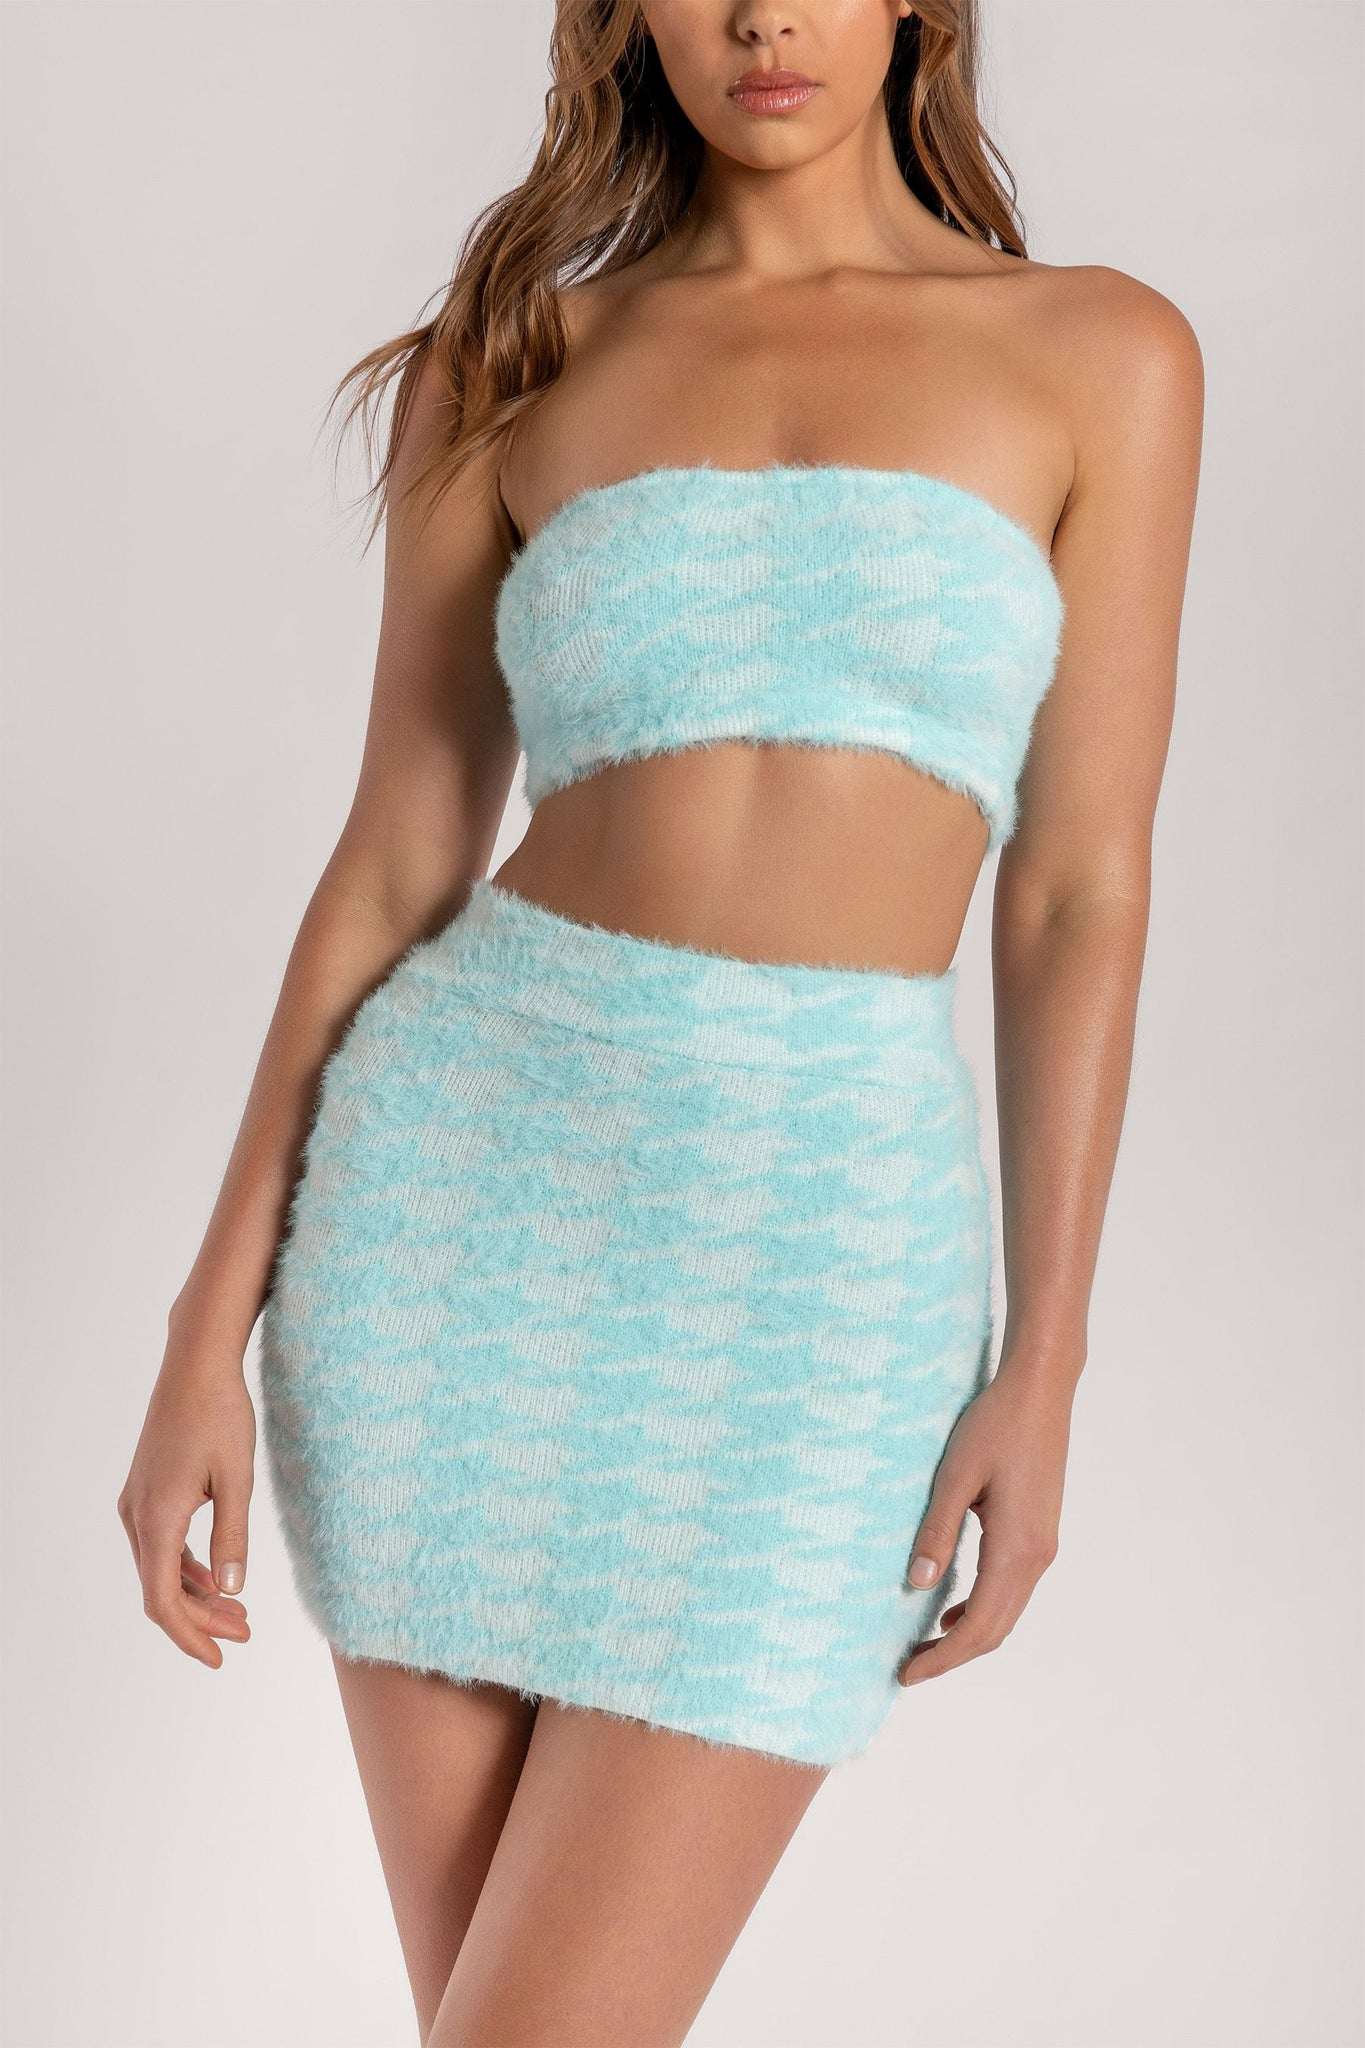 Cindie Fluffy Houndstooth Bandeau Top - Blue - MESHKI